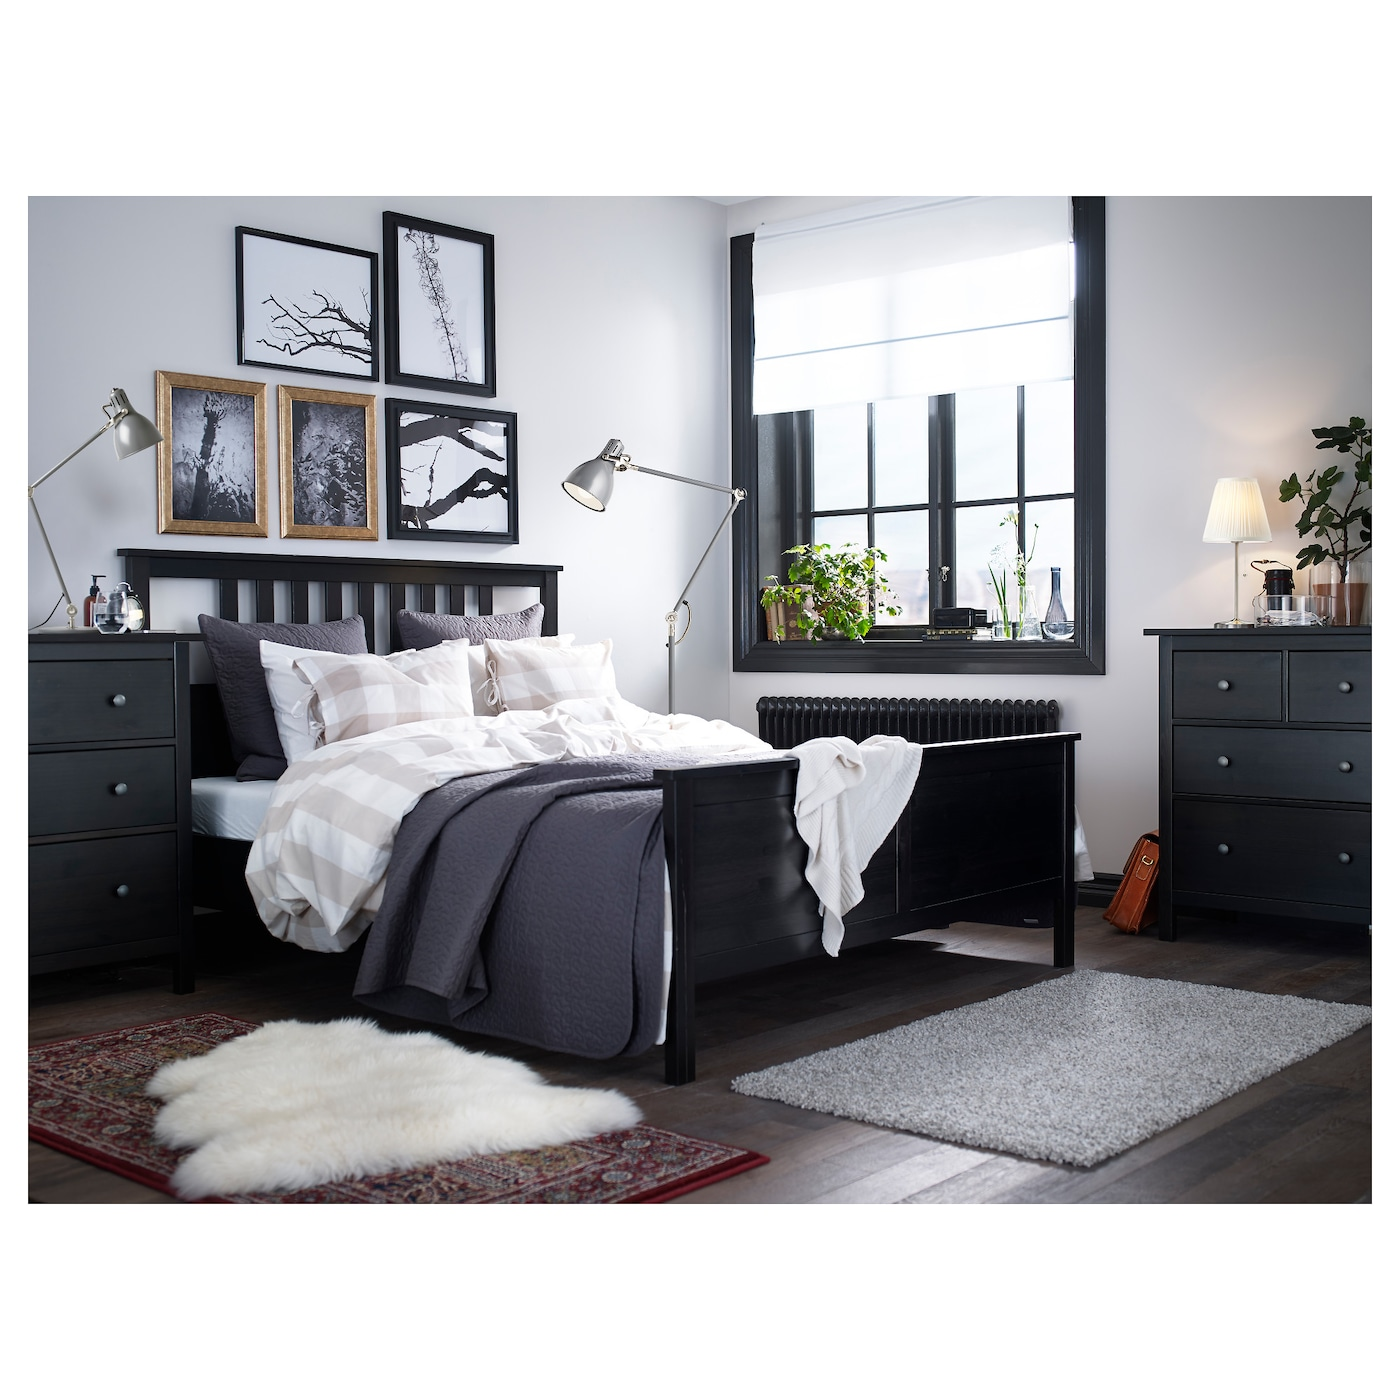 hemnes bed frame black brown l nset standard king ikea. Black Bedroom Furniture Sets. Home Design Ideas